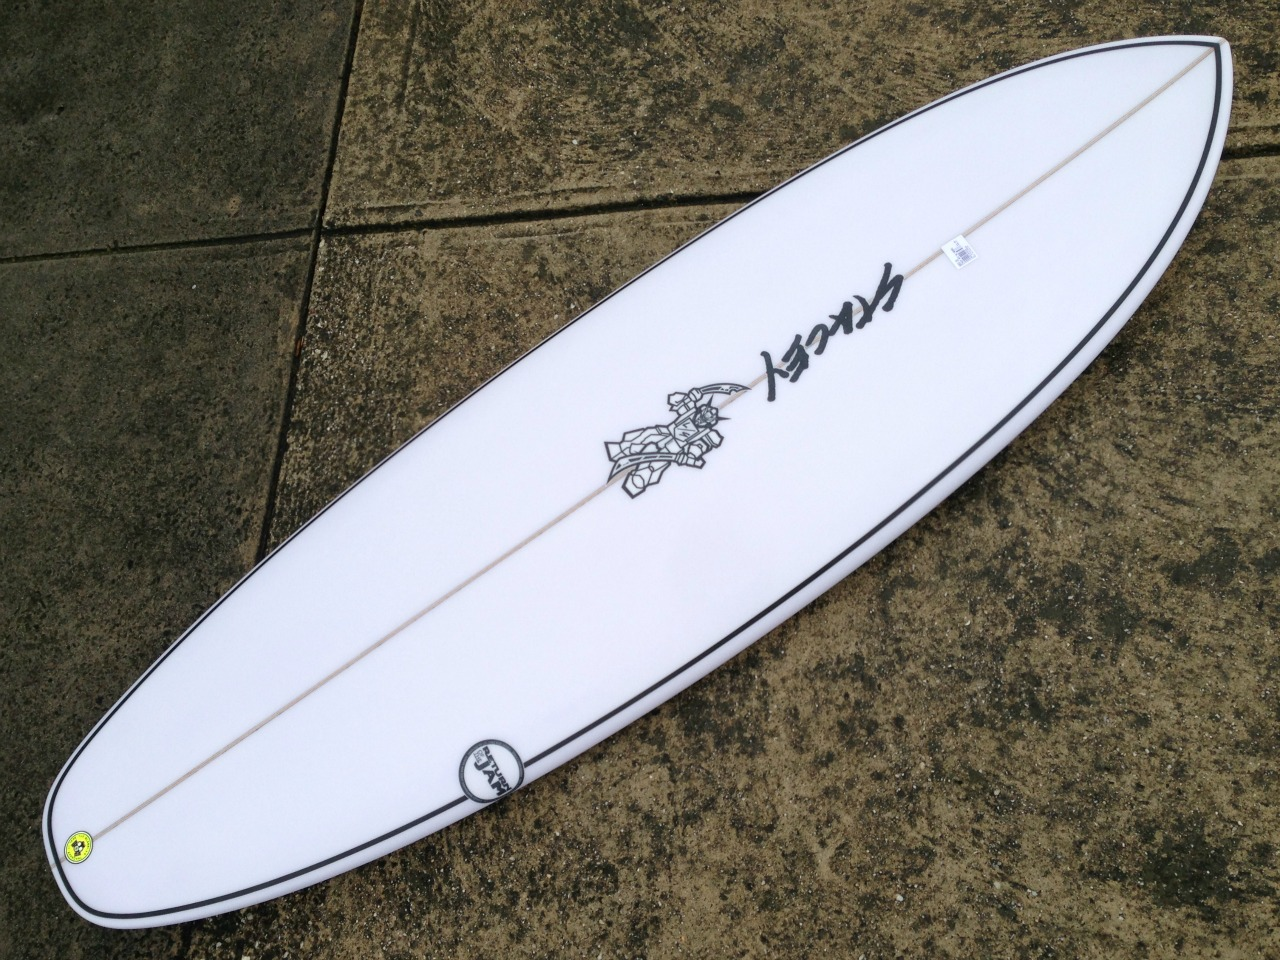 Stacey Surfboards on our racks - Stacey Return of the Jam by Zak Surfboards